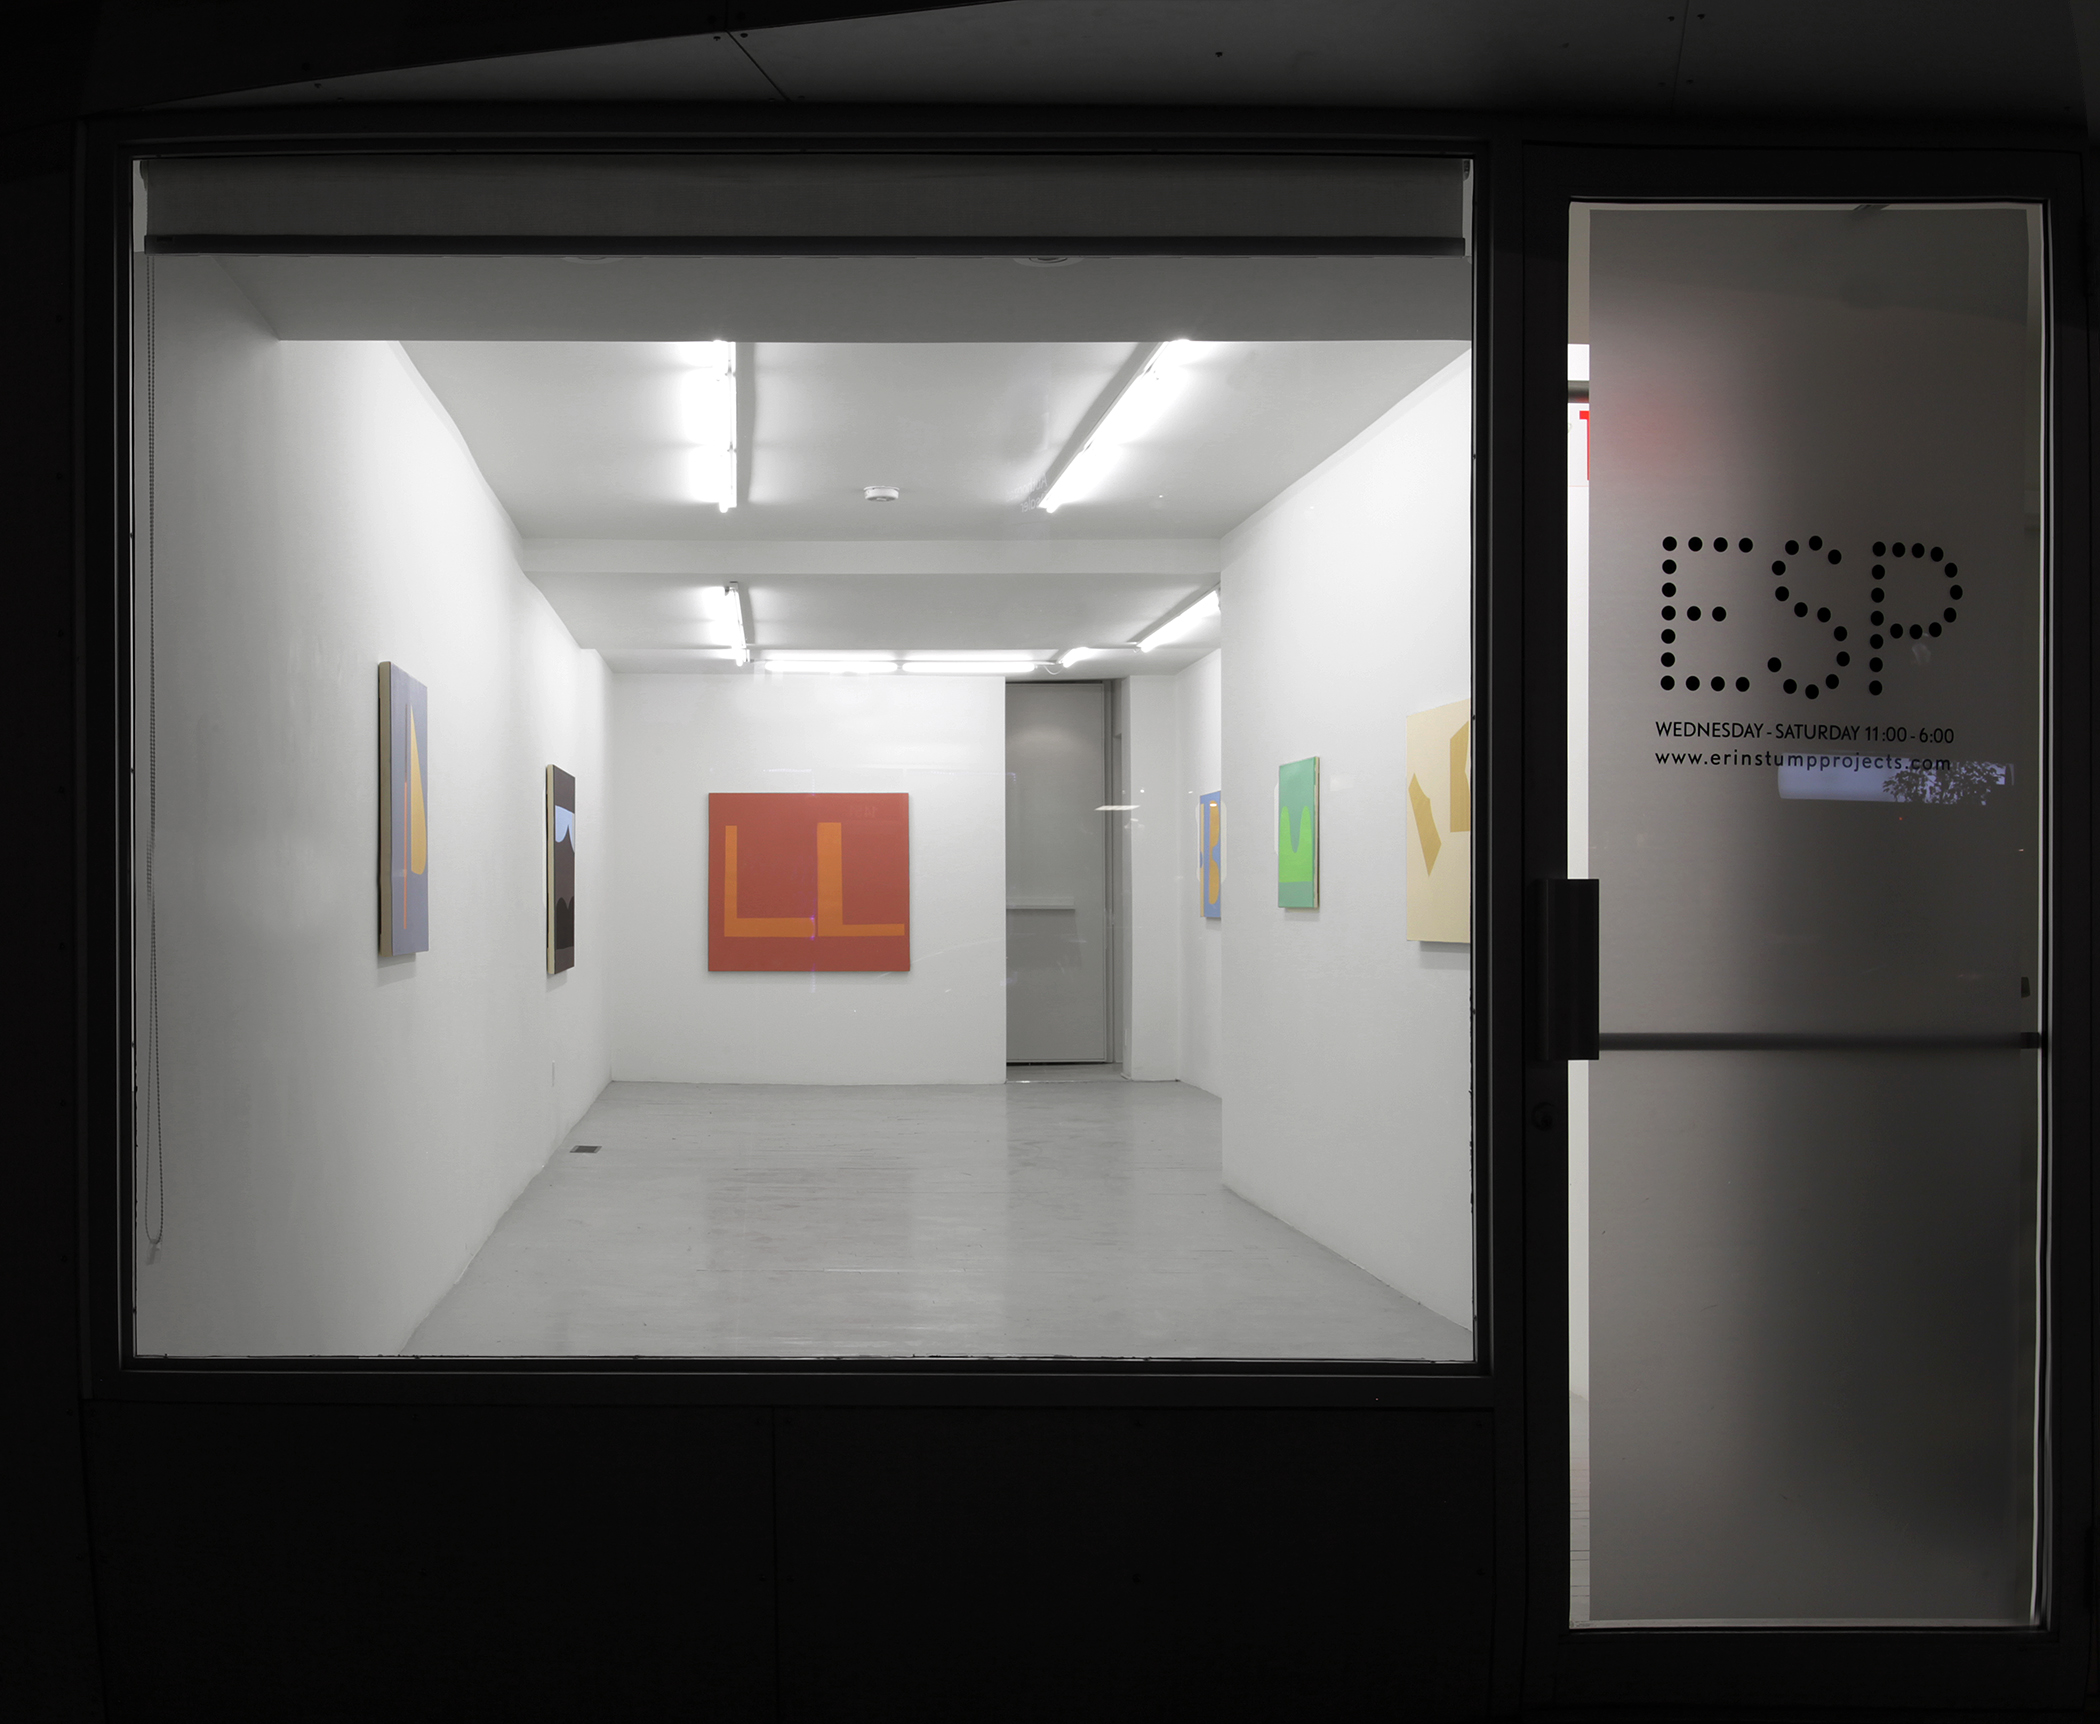 Erin Stump Projects. 1450 Dundas St W Toronto ON M6J 1Y6 CANADA. 647 345 6163 info@erinstumpprojects.com. Wed–Sat 11–6pm.